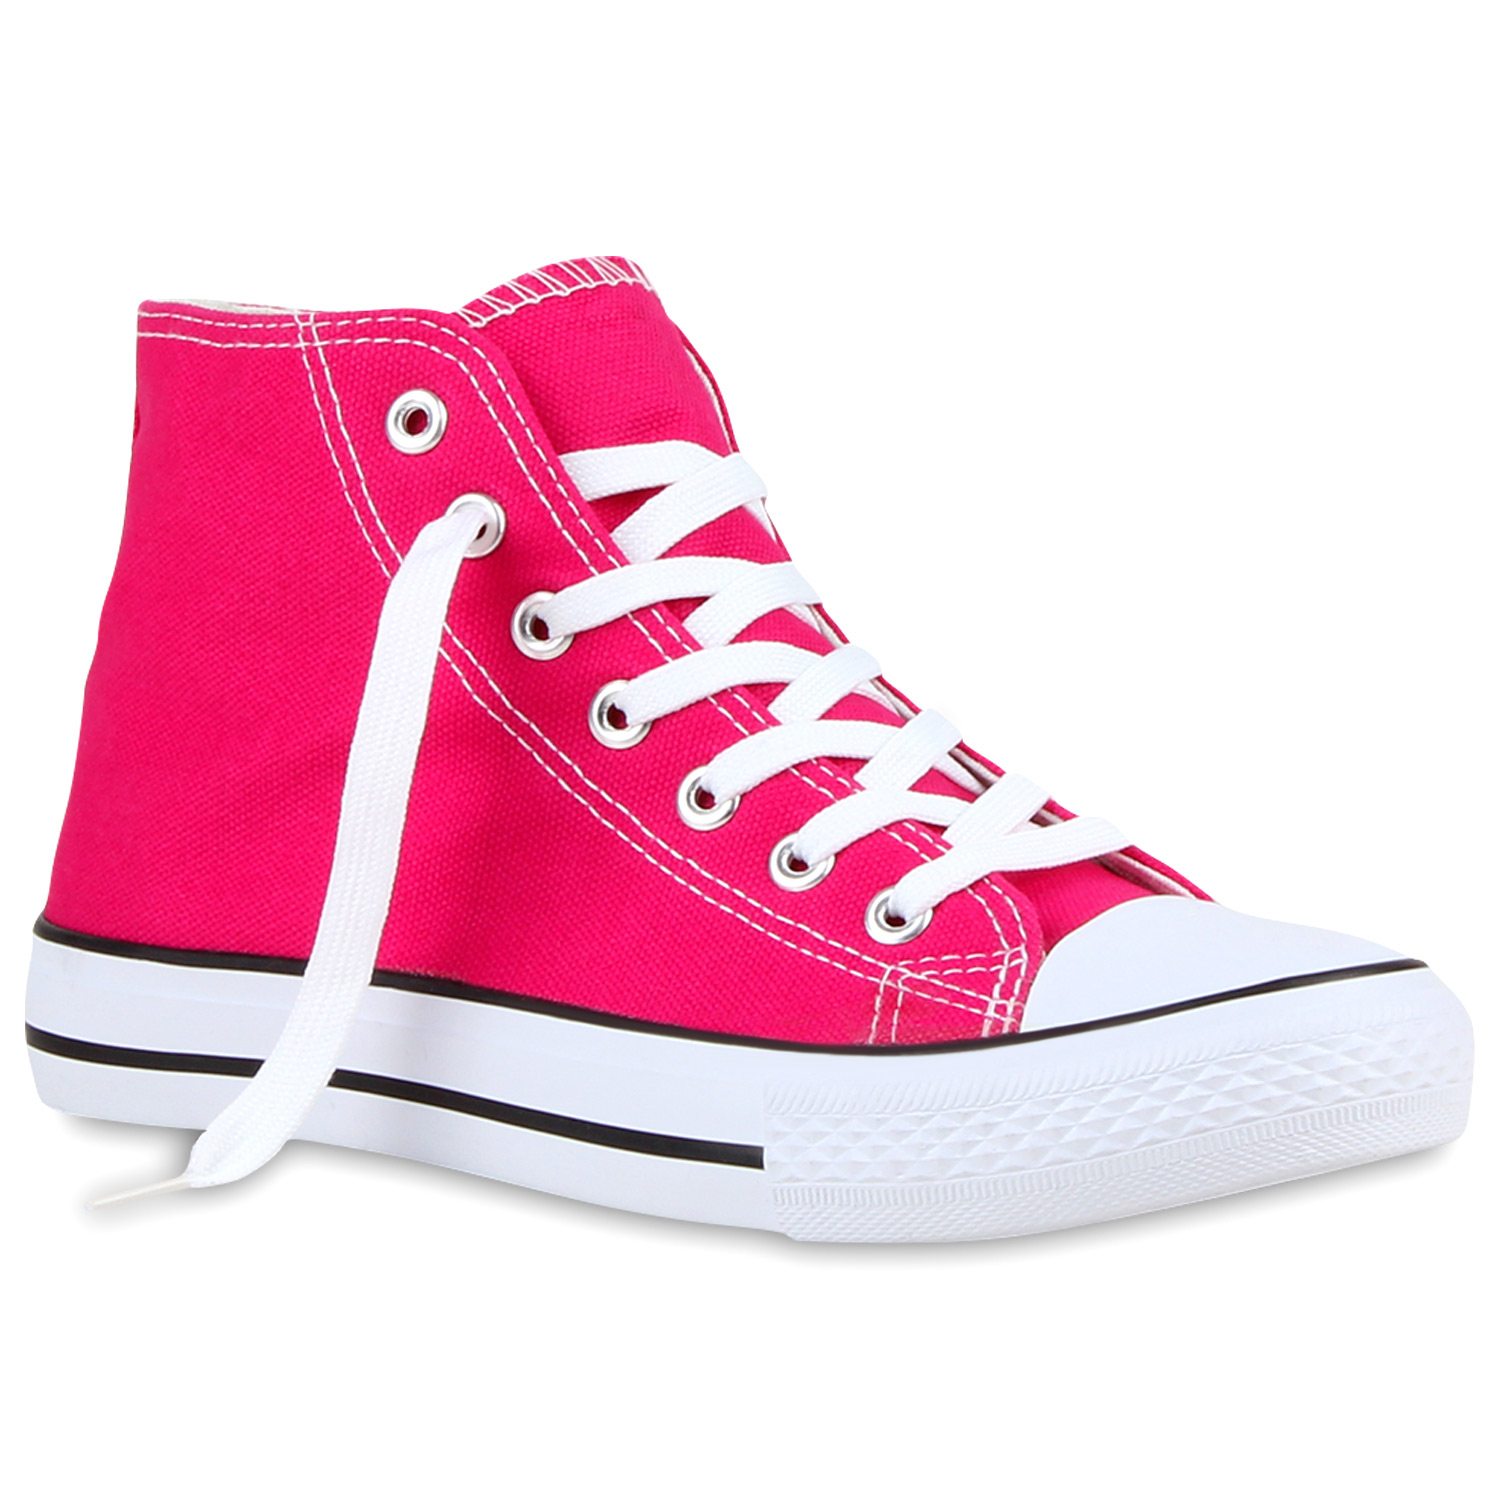 FASHION DAMEN SCHUHE 118774 SNEAKERS PINK 37 NEUWARE